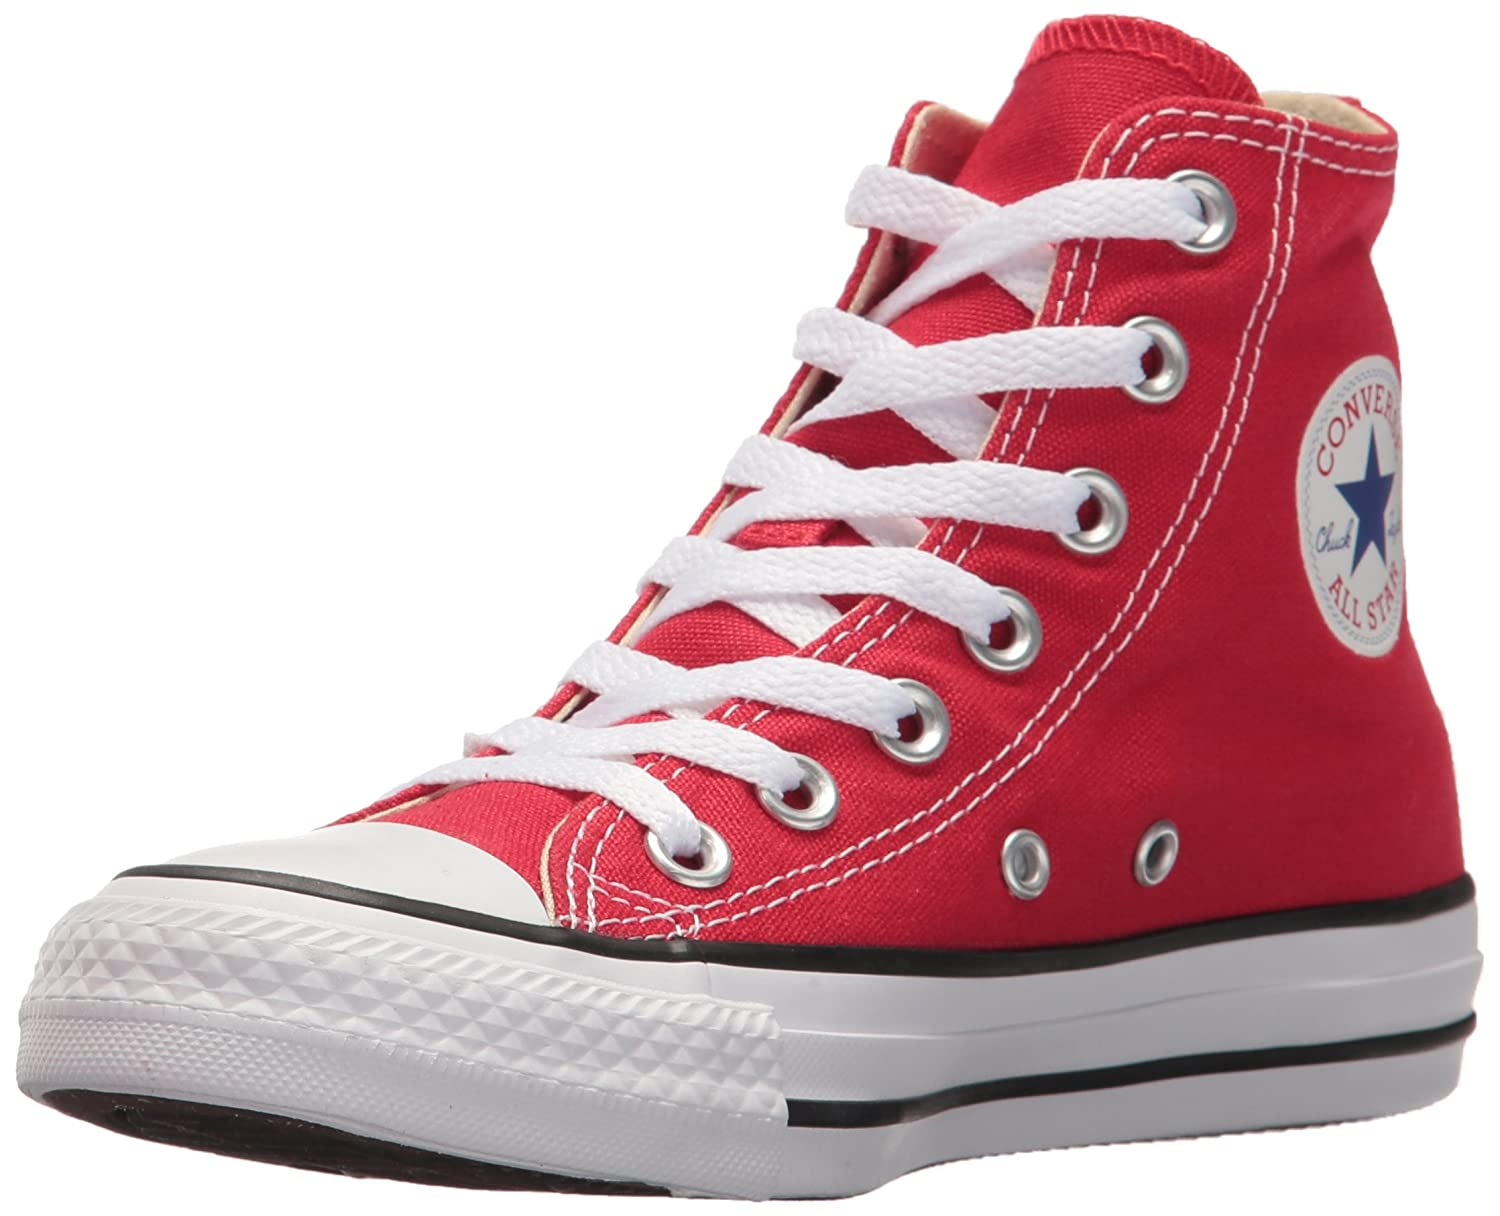 Converse Chuck Taylor All Star Seasonal Color Hi B076CWY3R8 7.5 D(M) US / 9.5 B(M) US / 41 EUR|Red